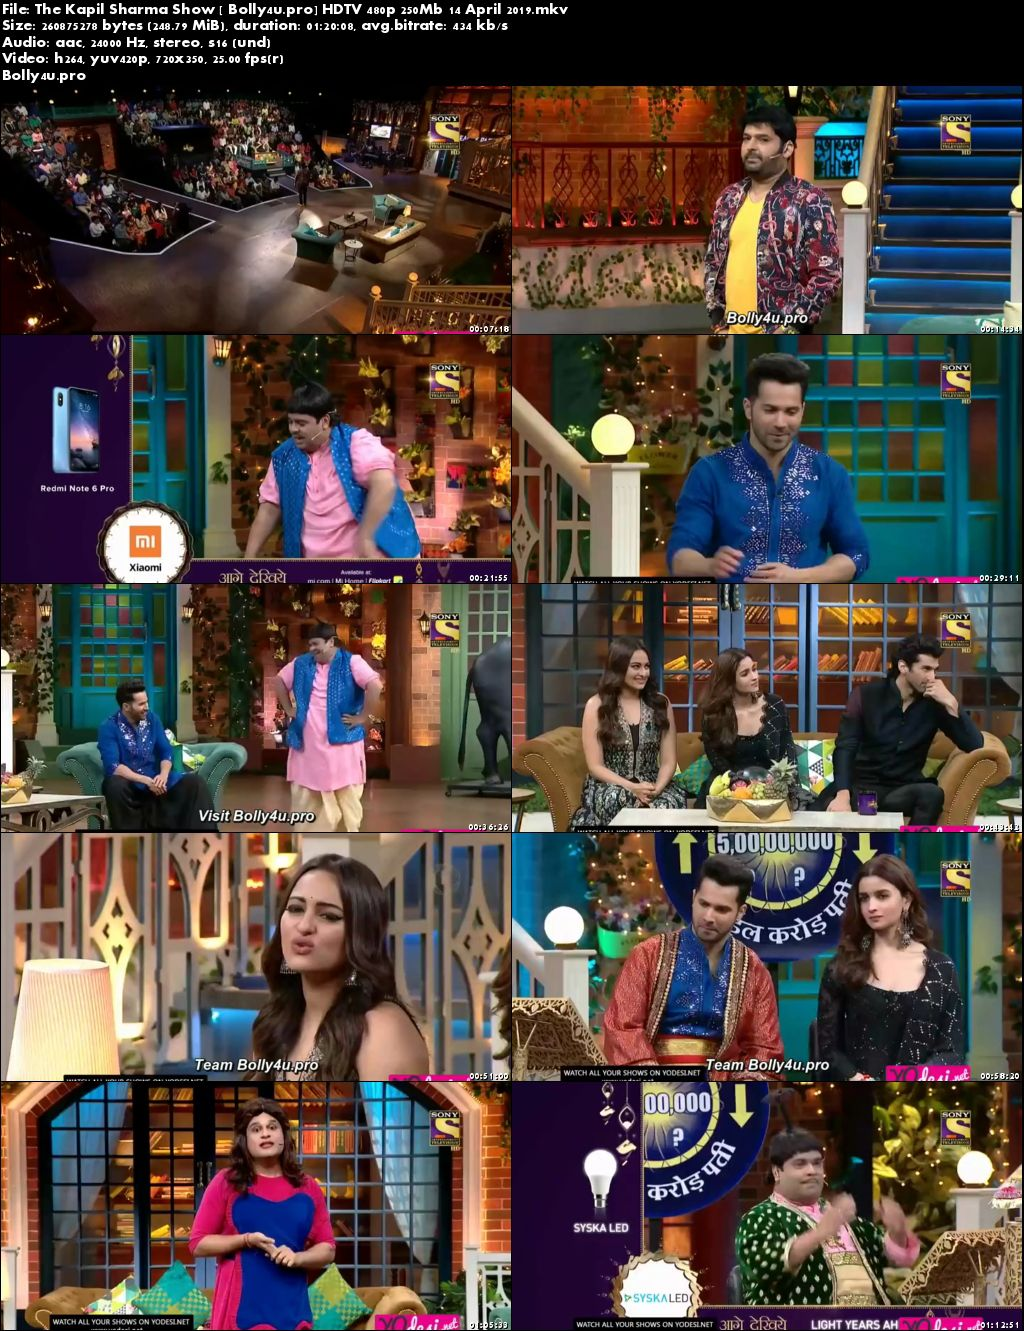 The Kapil Sharma Show HDTV 480p 250Mb 14 April 2019 Download